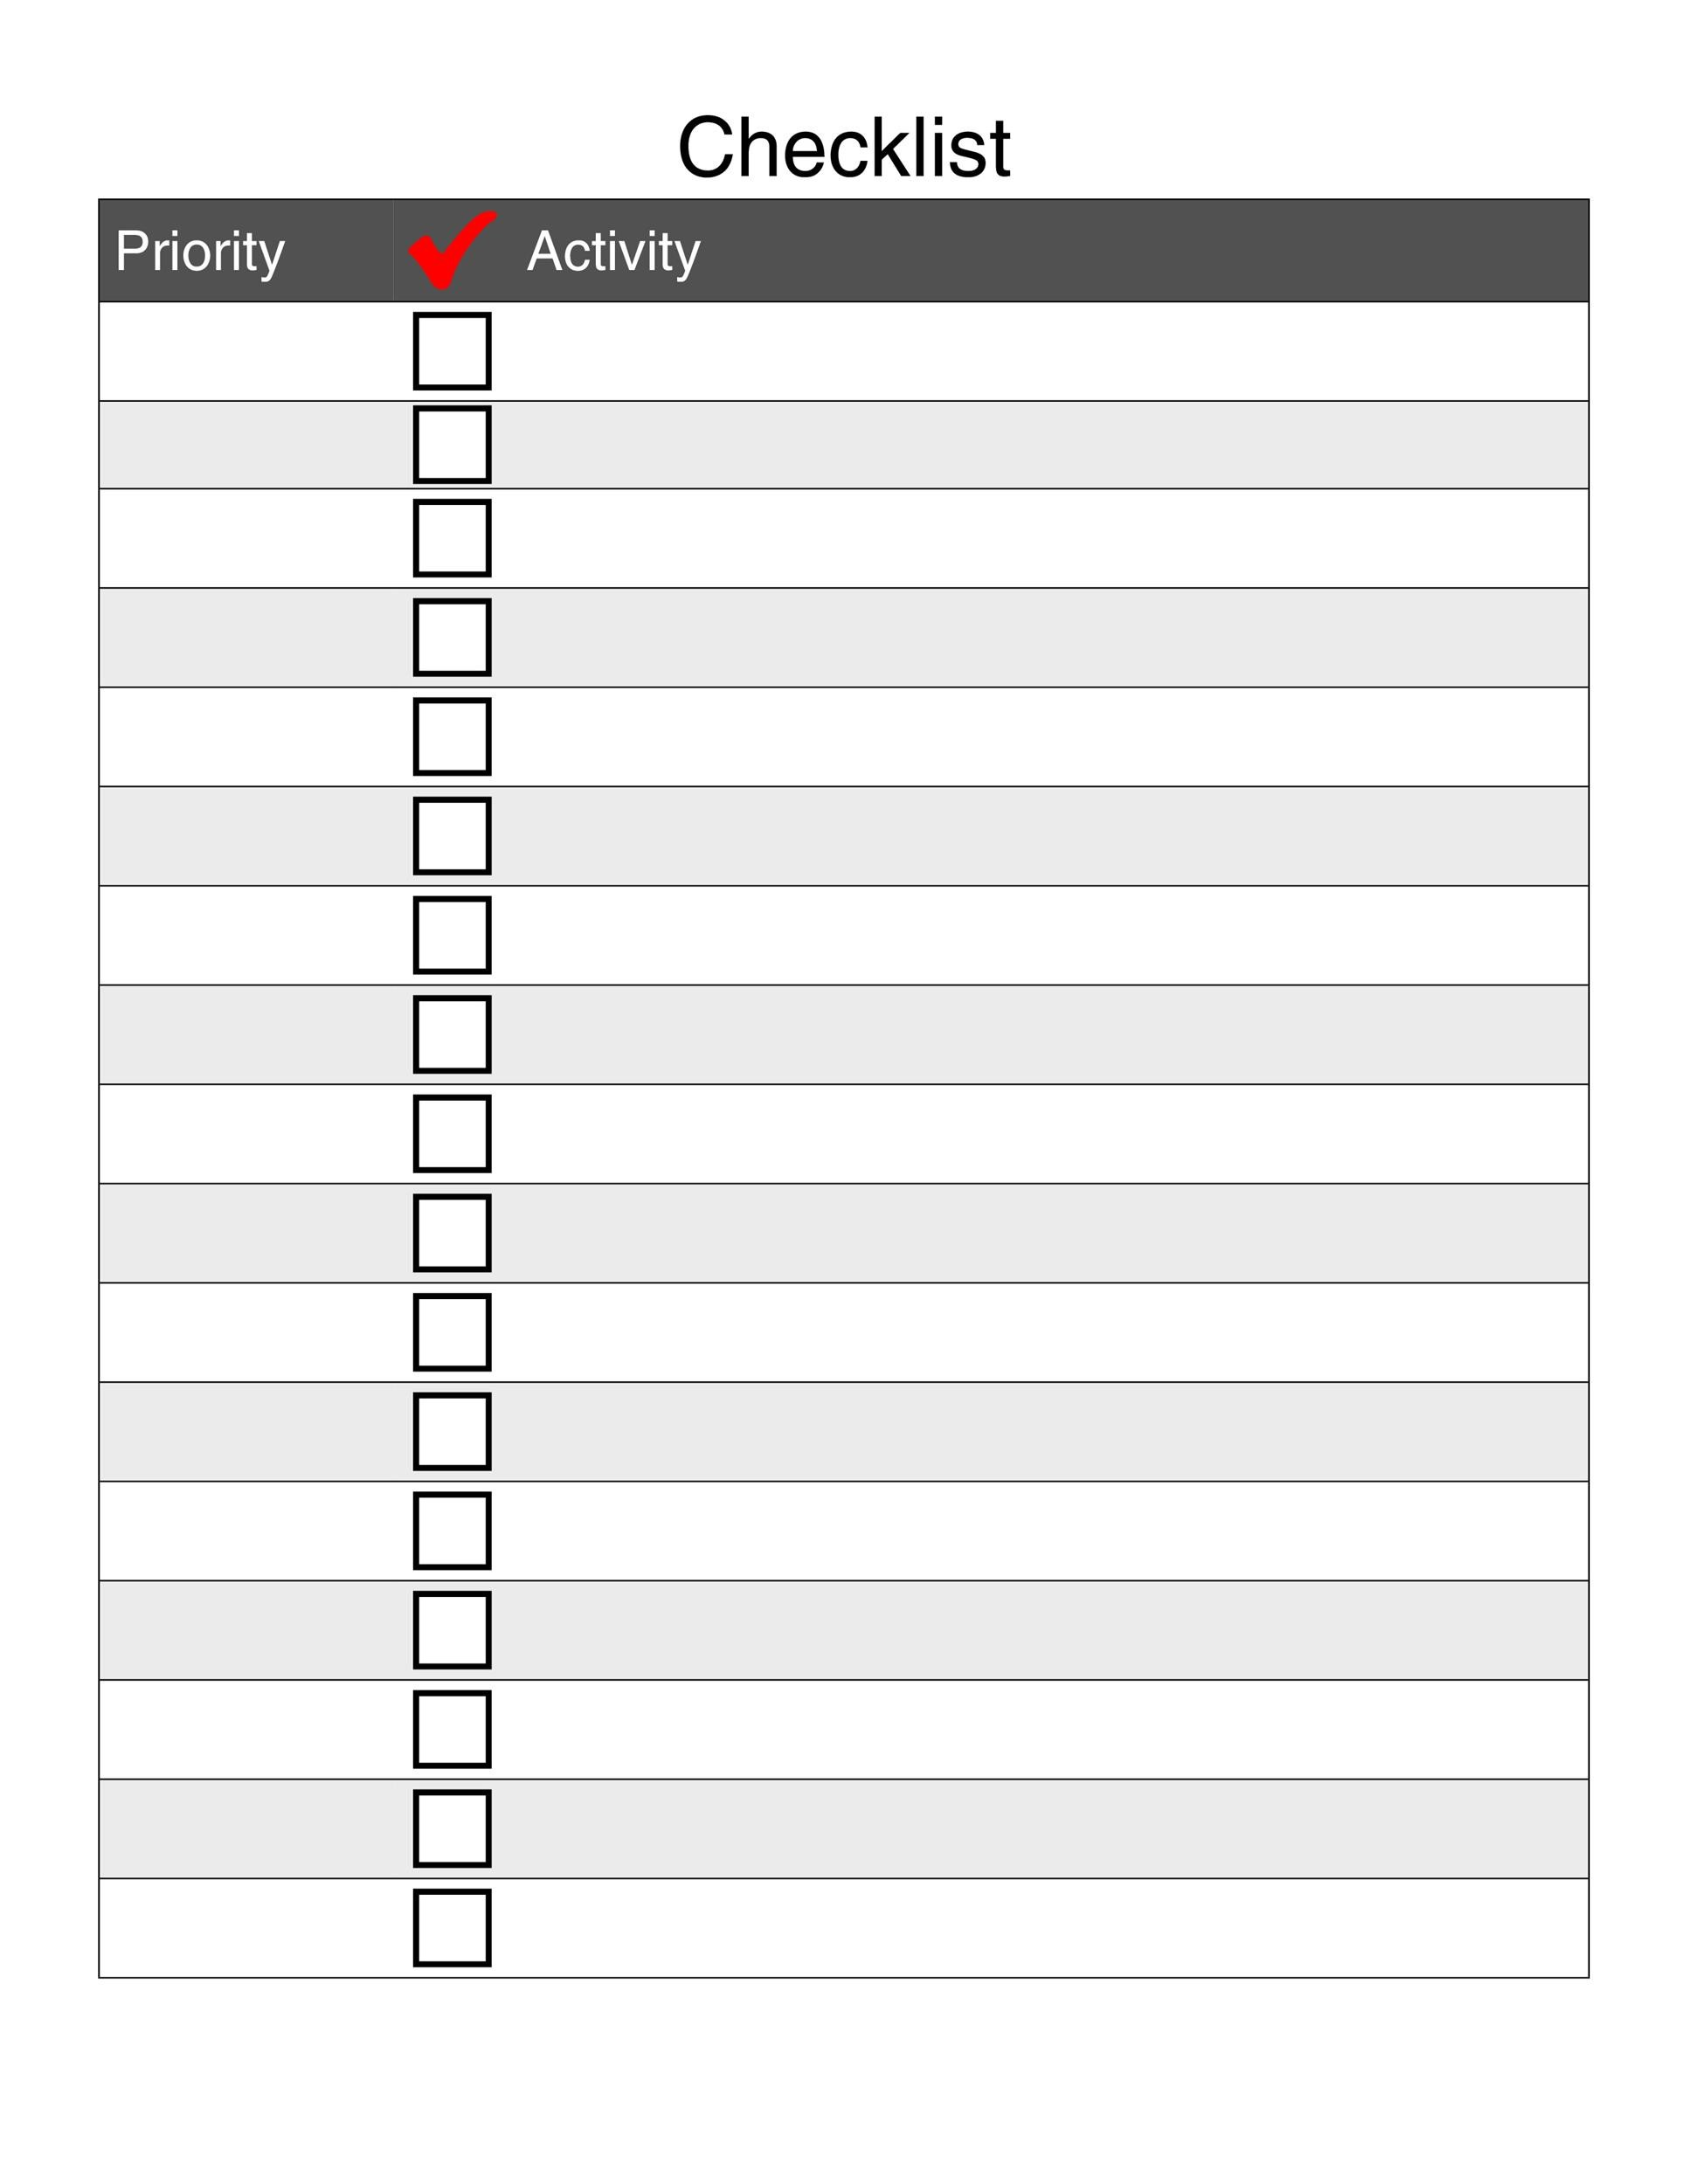 50+ Printable To Do List & Checklist Templates (Excel + Word)